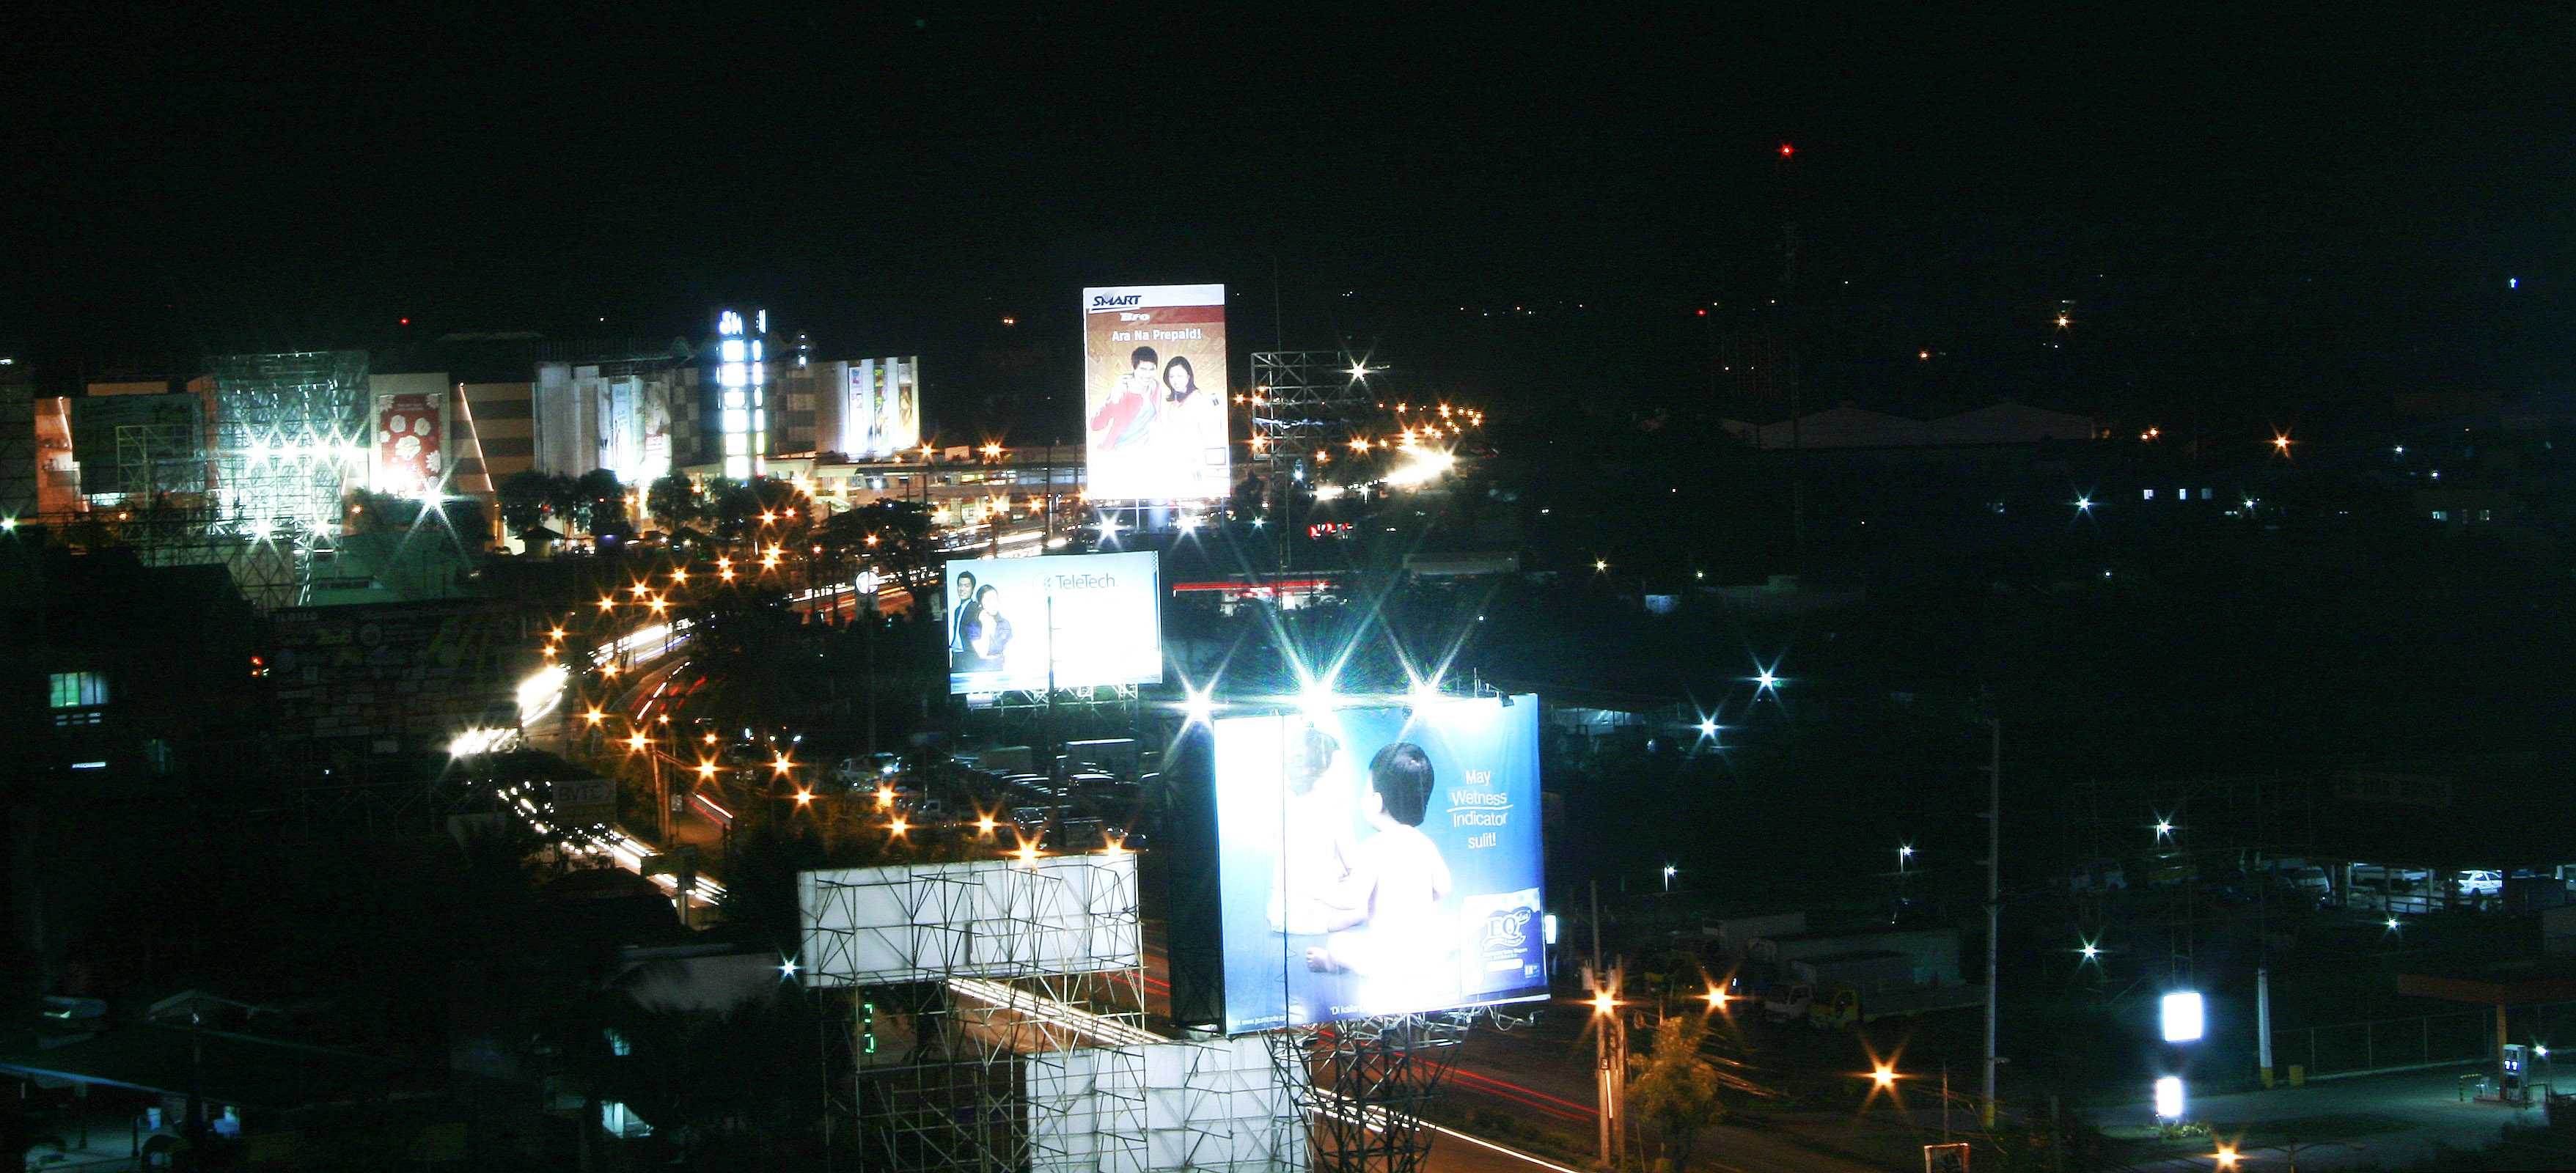 Iloilo City at night. (Photo by Tara Yap)